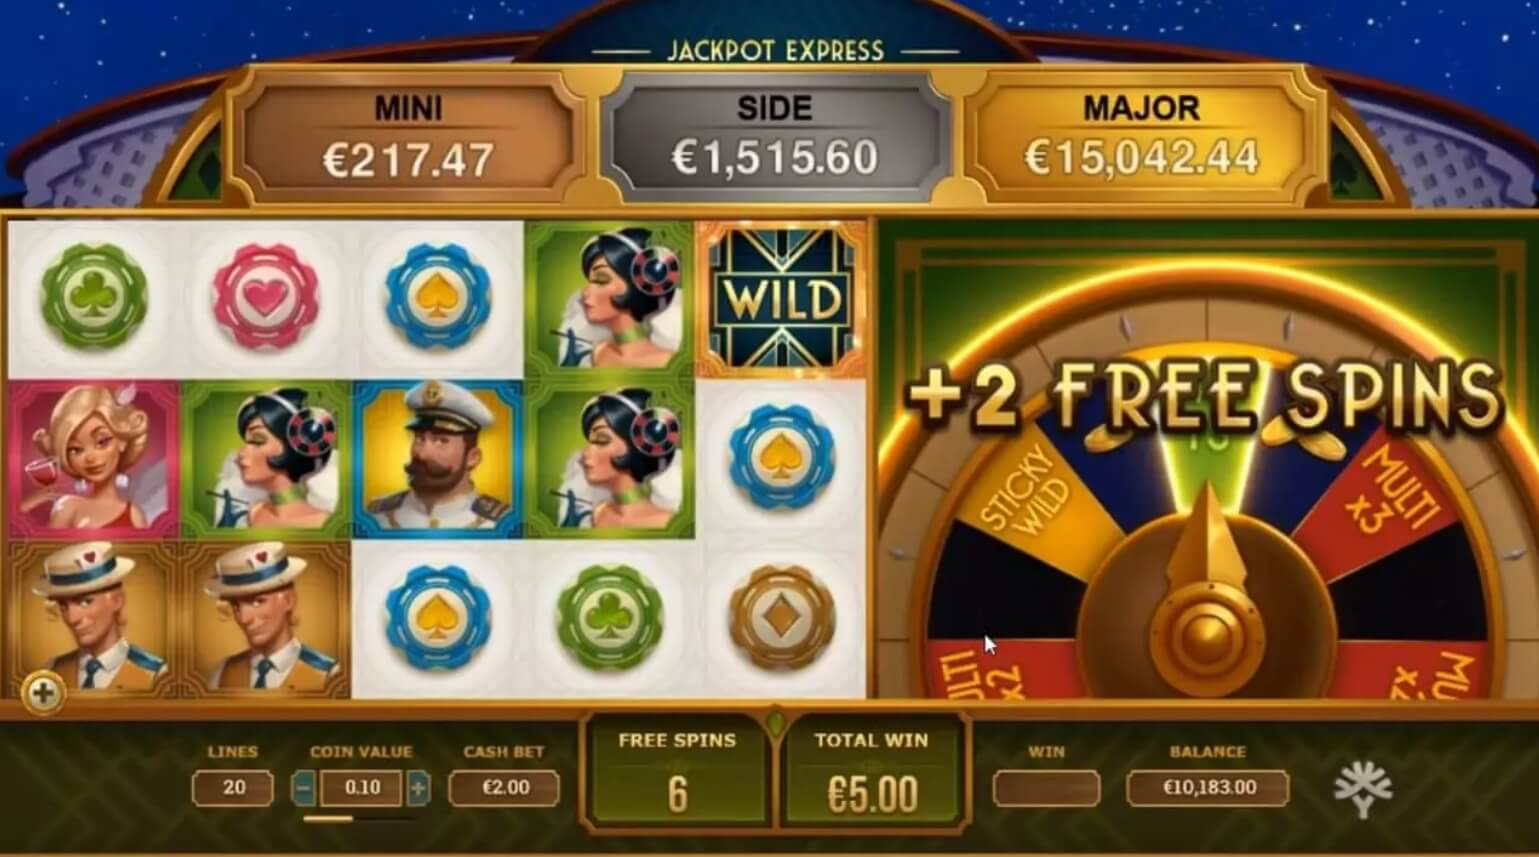 jackpot express slot screen